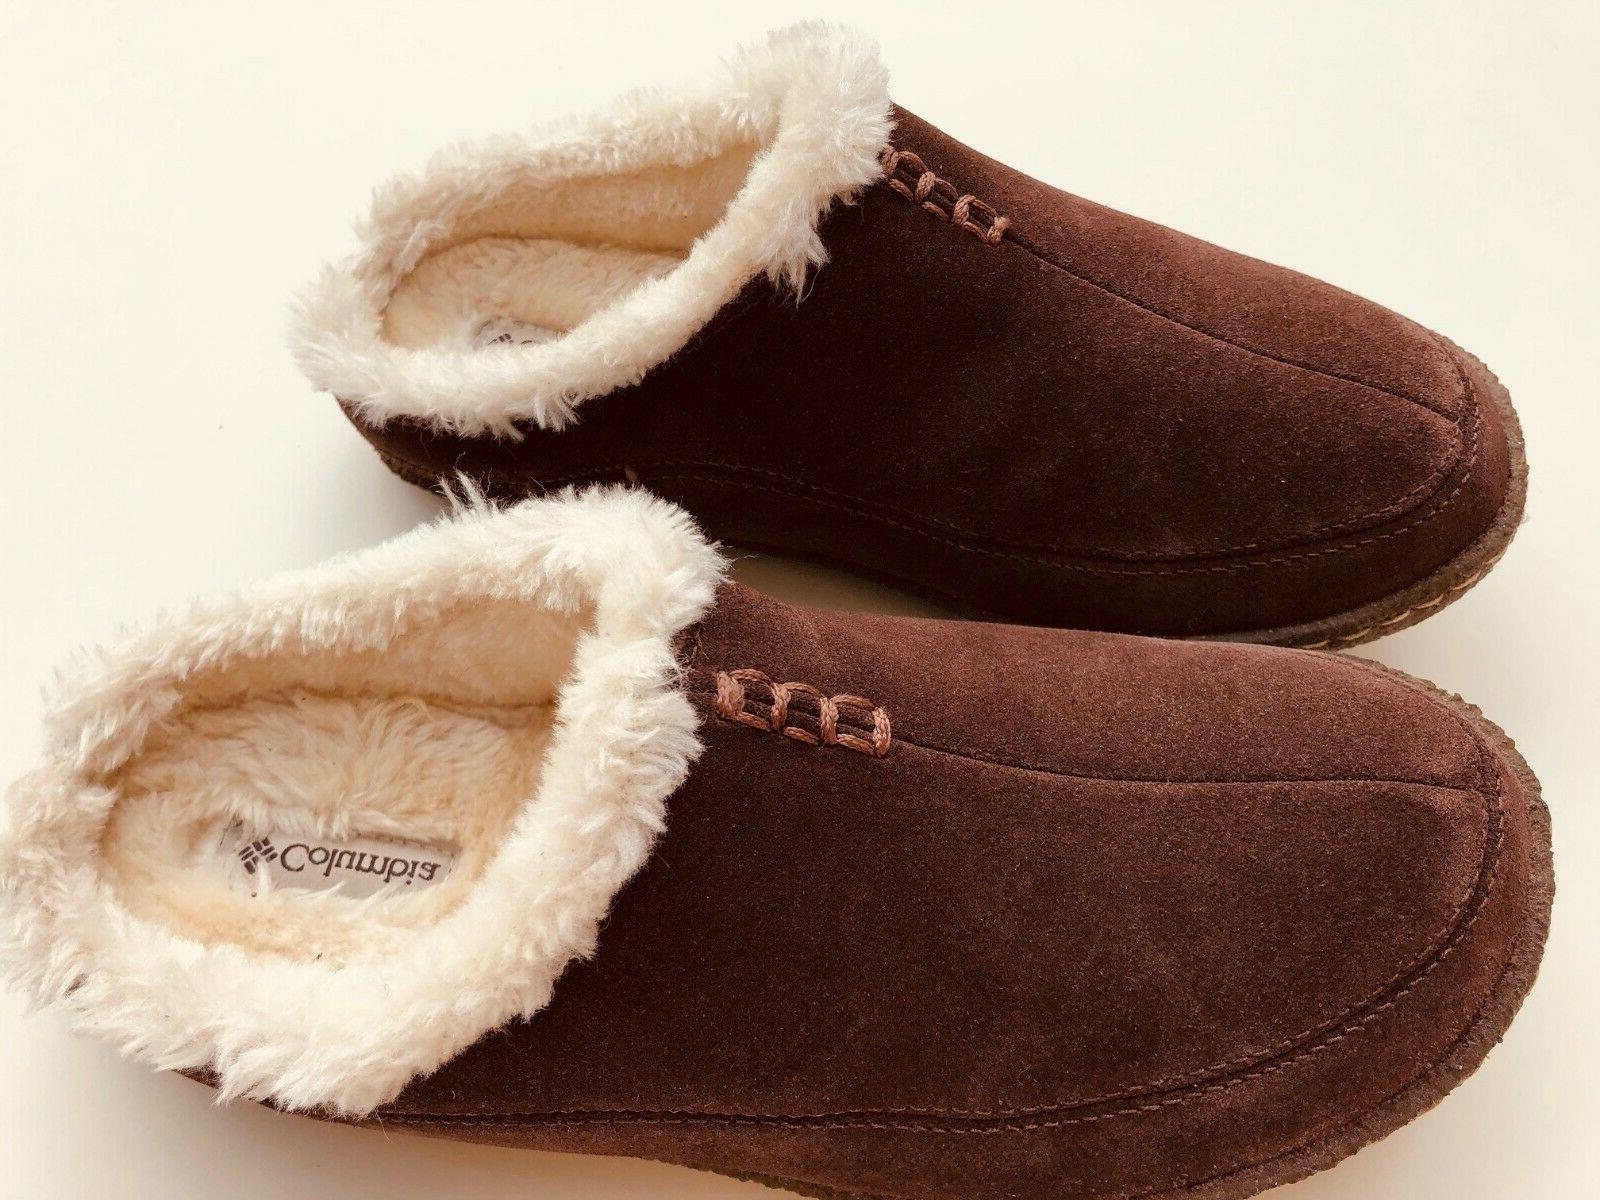 euc suede slippers size 7 us 40